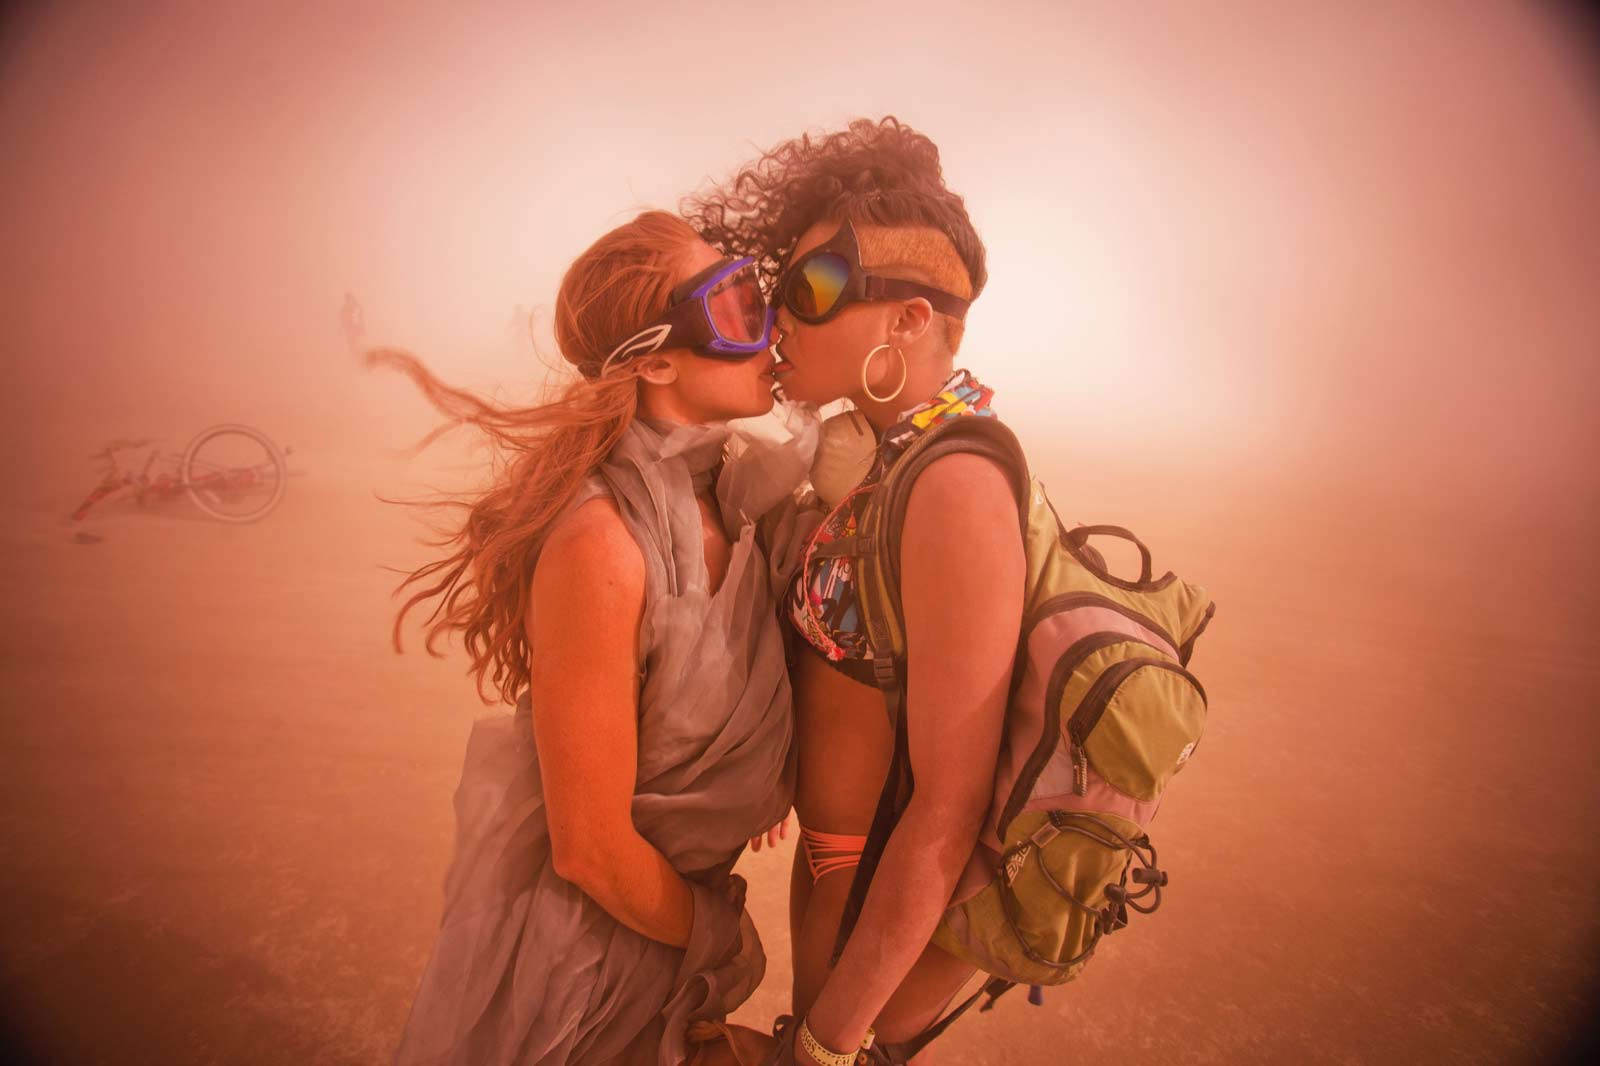 Burning-Man-2015-136;-Playa-Dust-Storm-Jessica-Sophia-Kiss